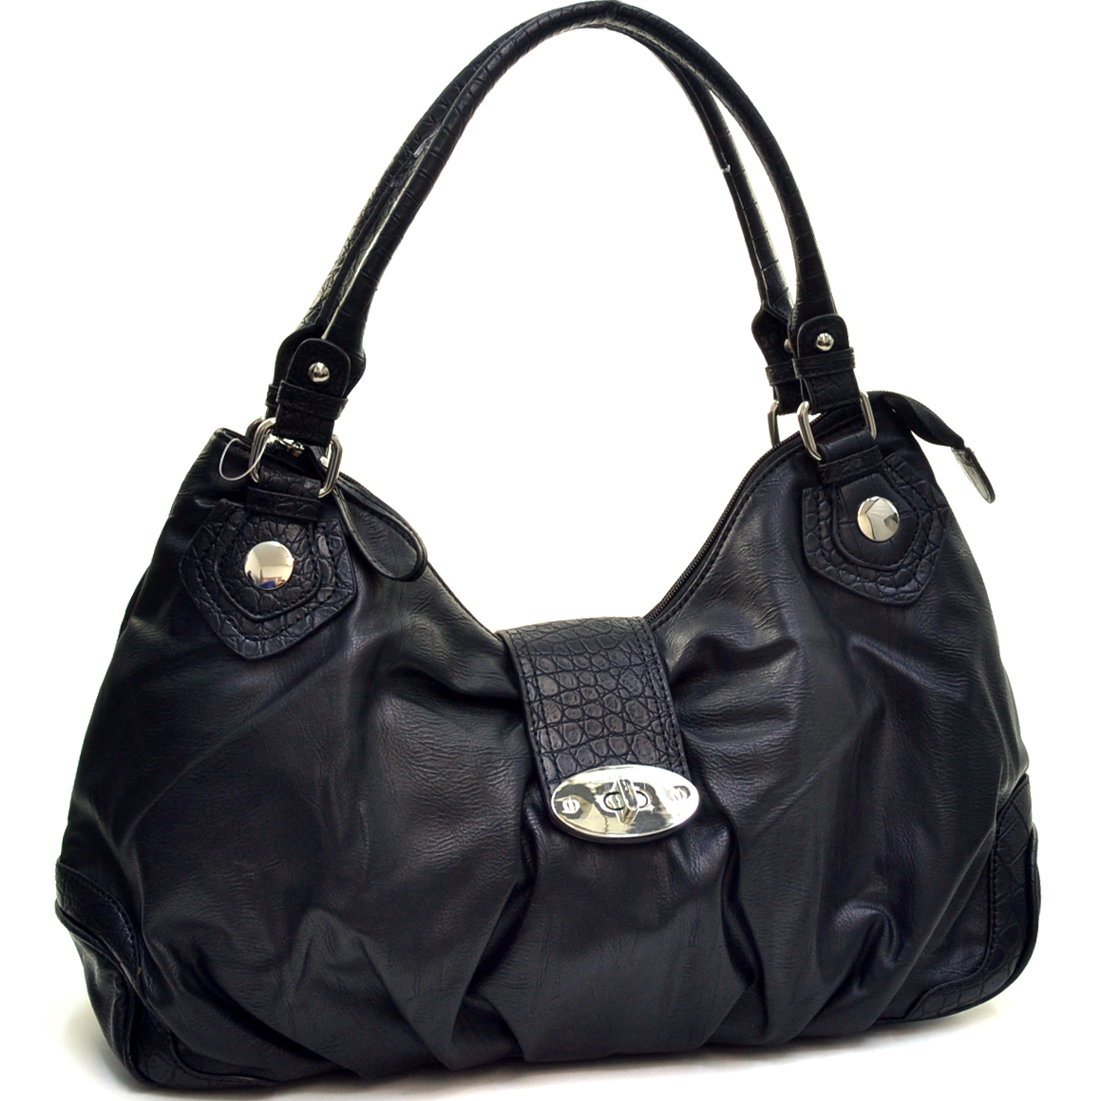 Dasein Two-Tone Shoulder Bag with Front Turnlock-Black